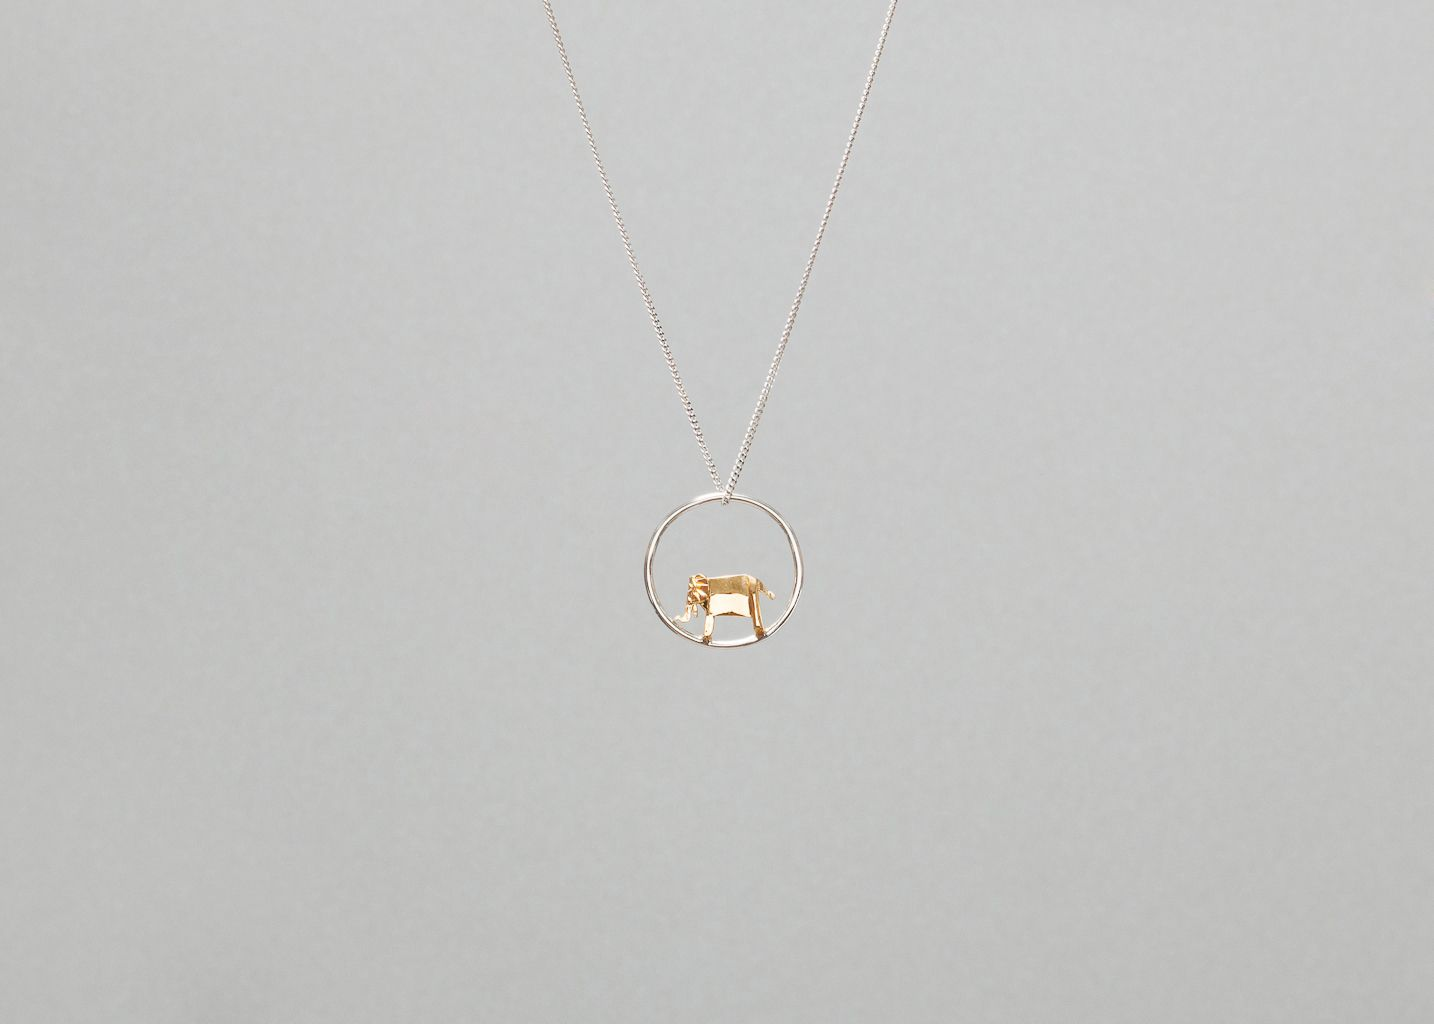 Collier Cercle Eléphant Origami - Origami Jewellery